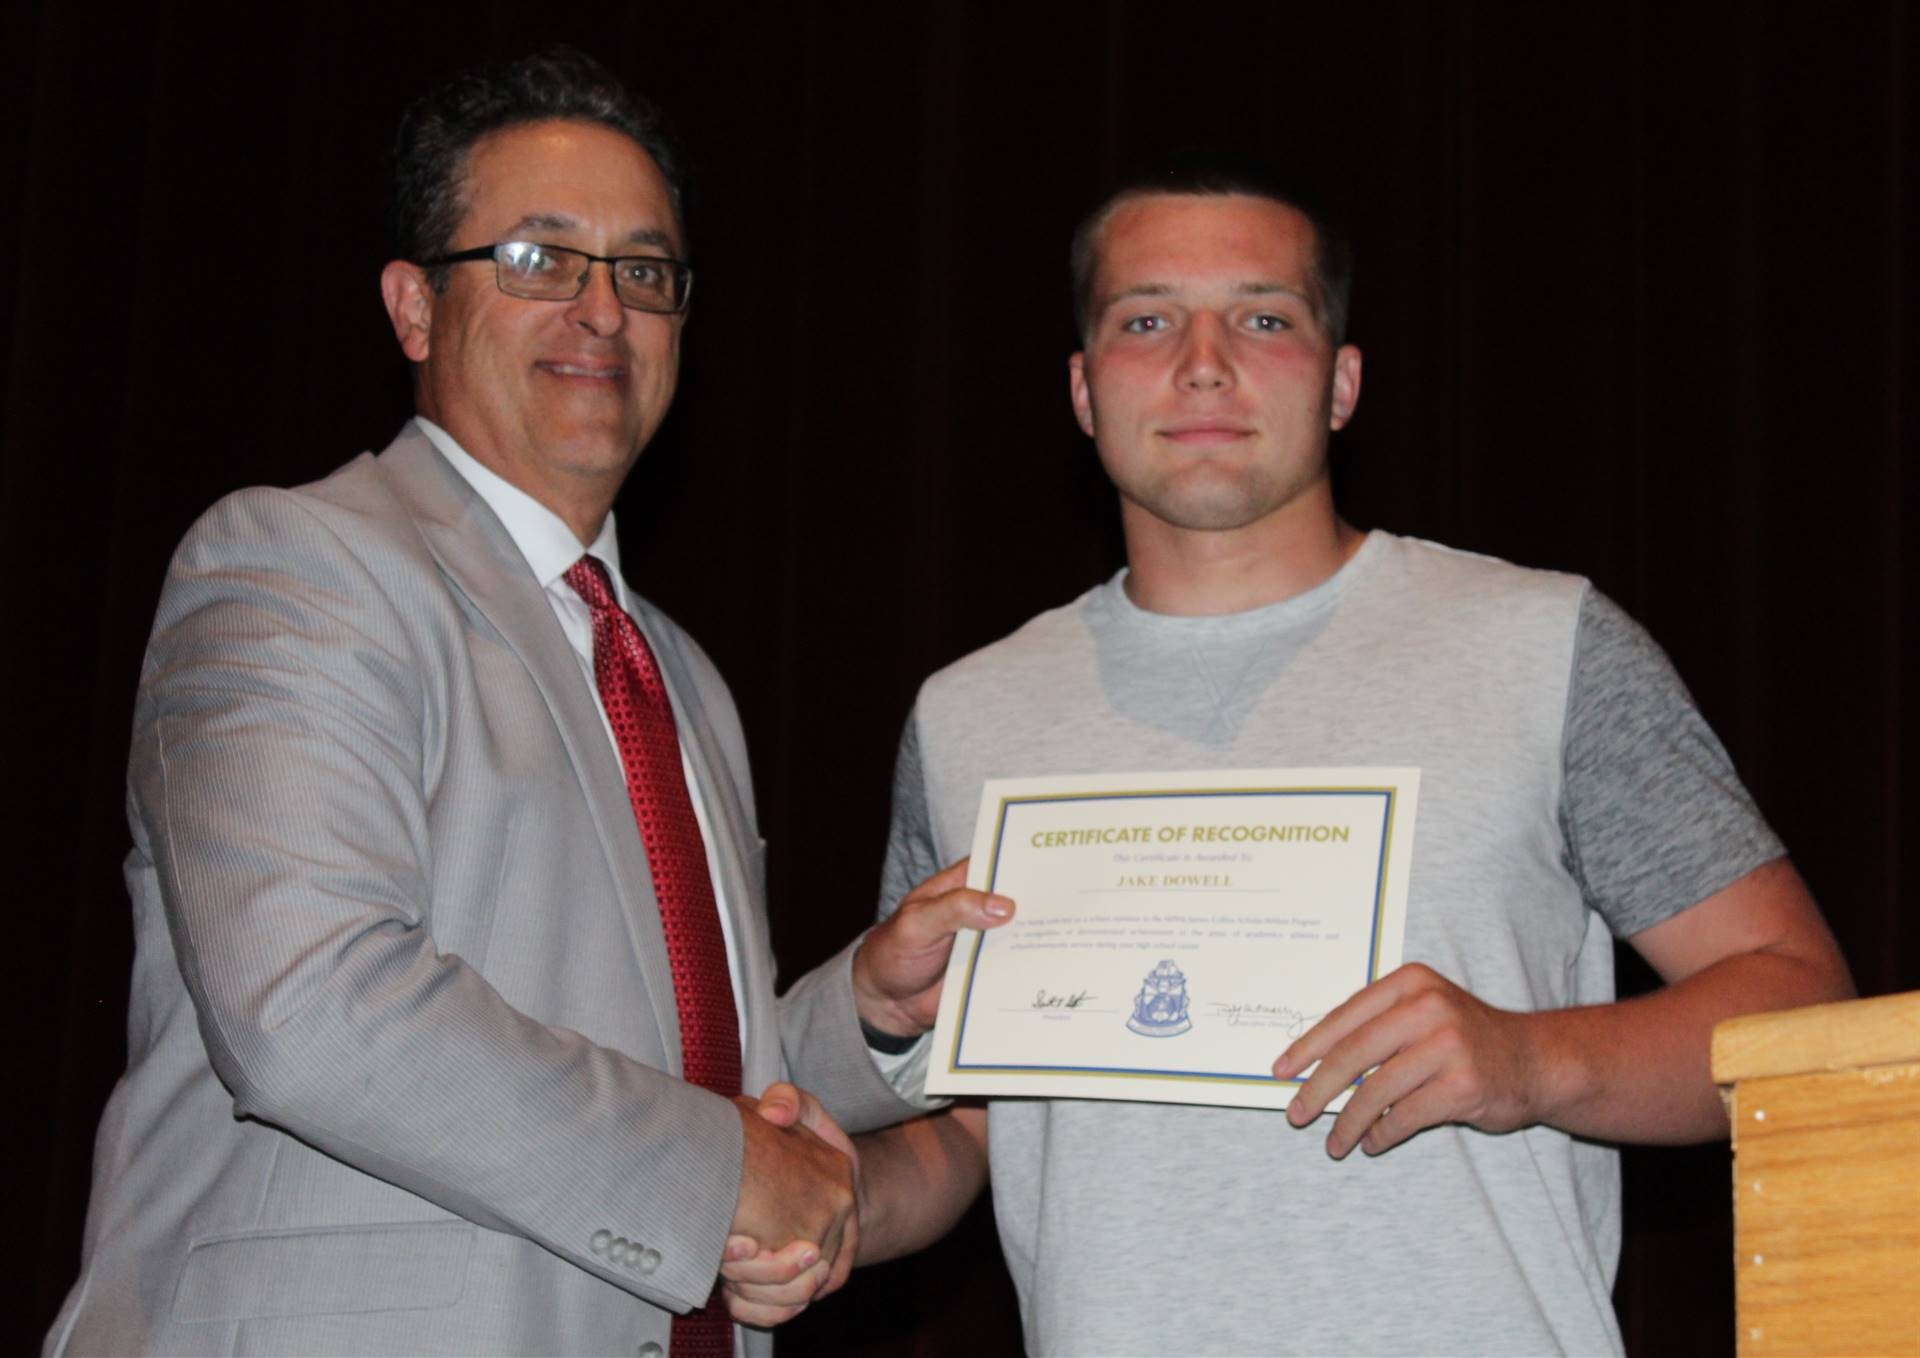 Student receiving recognition award